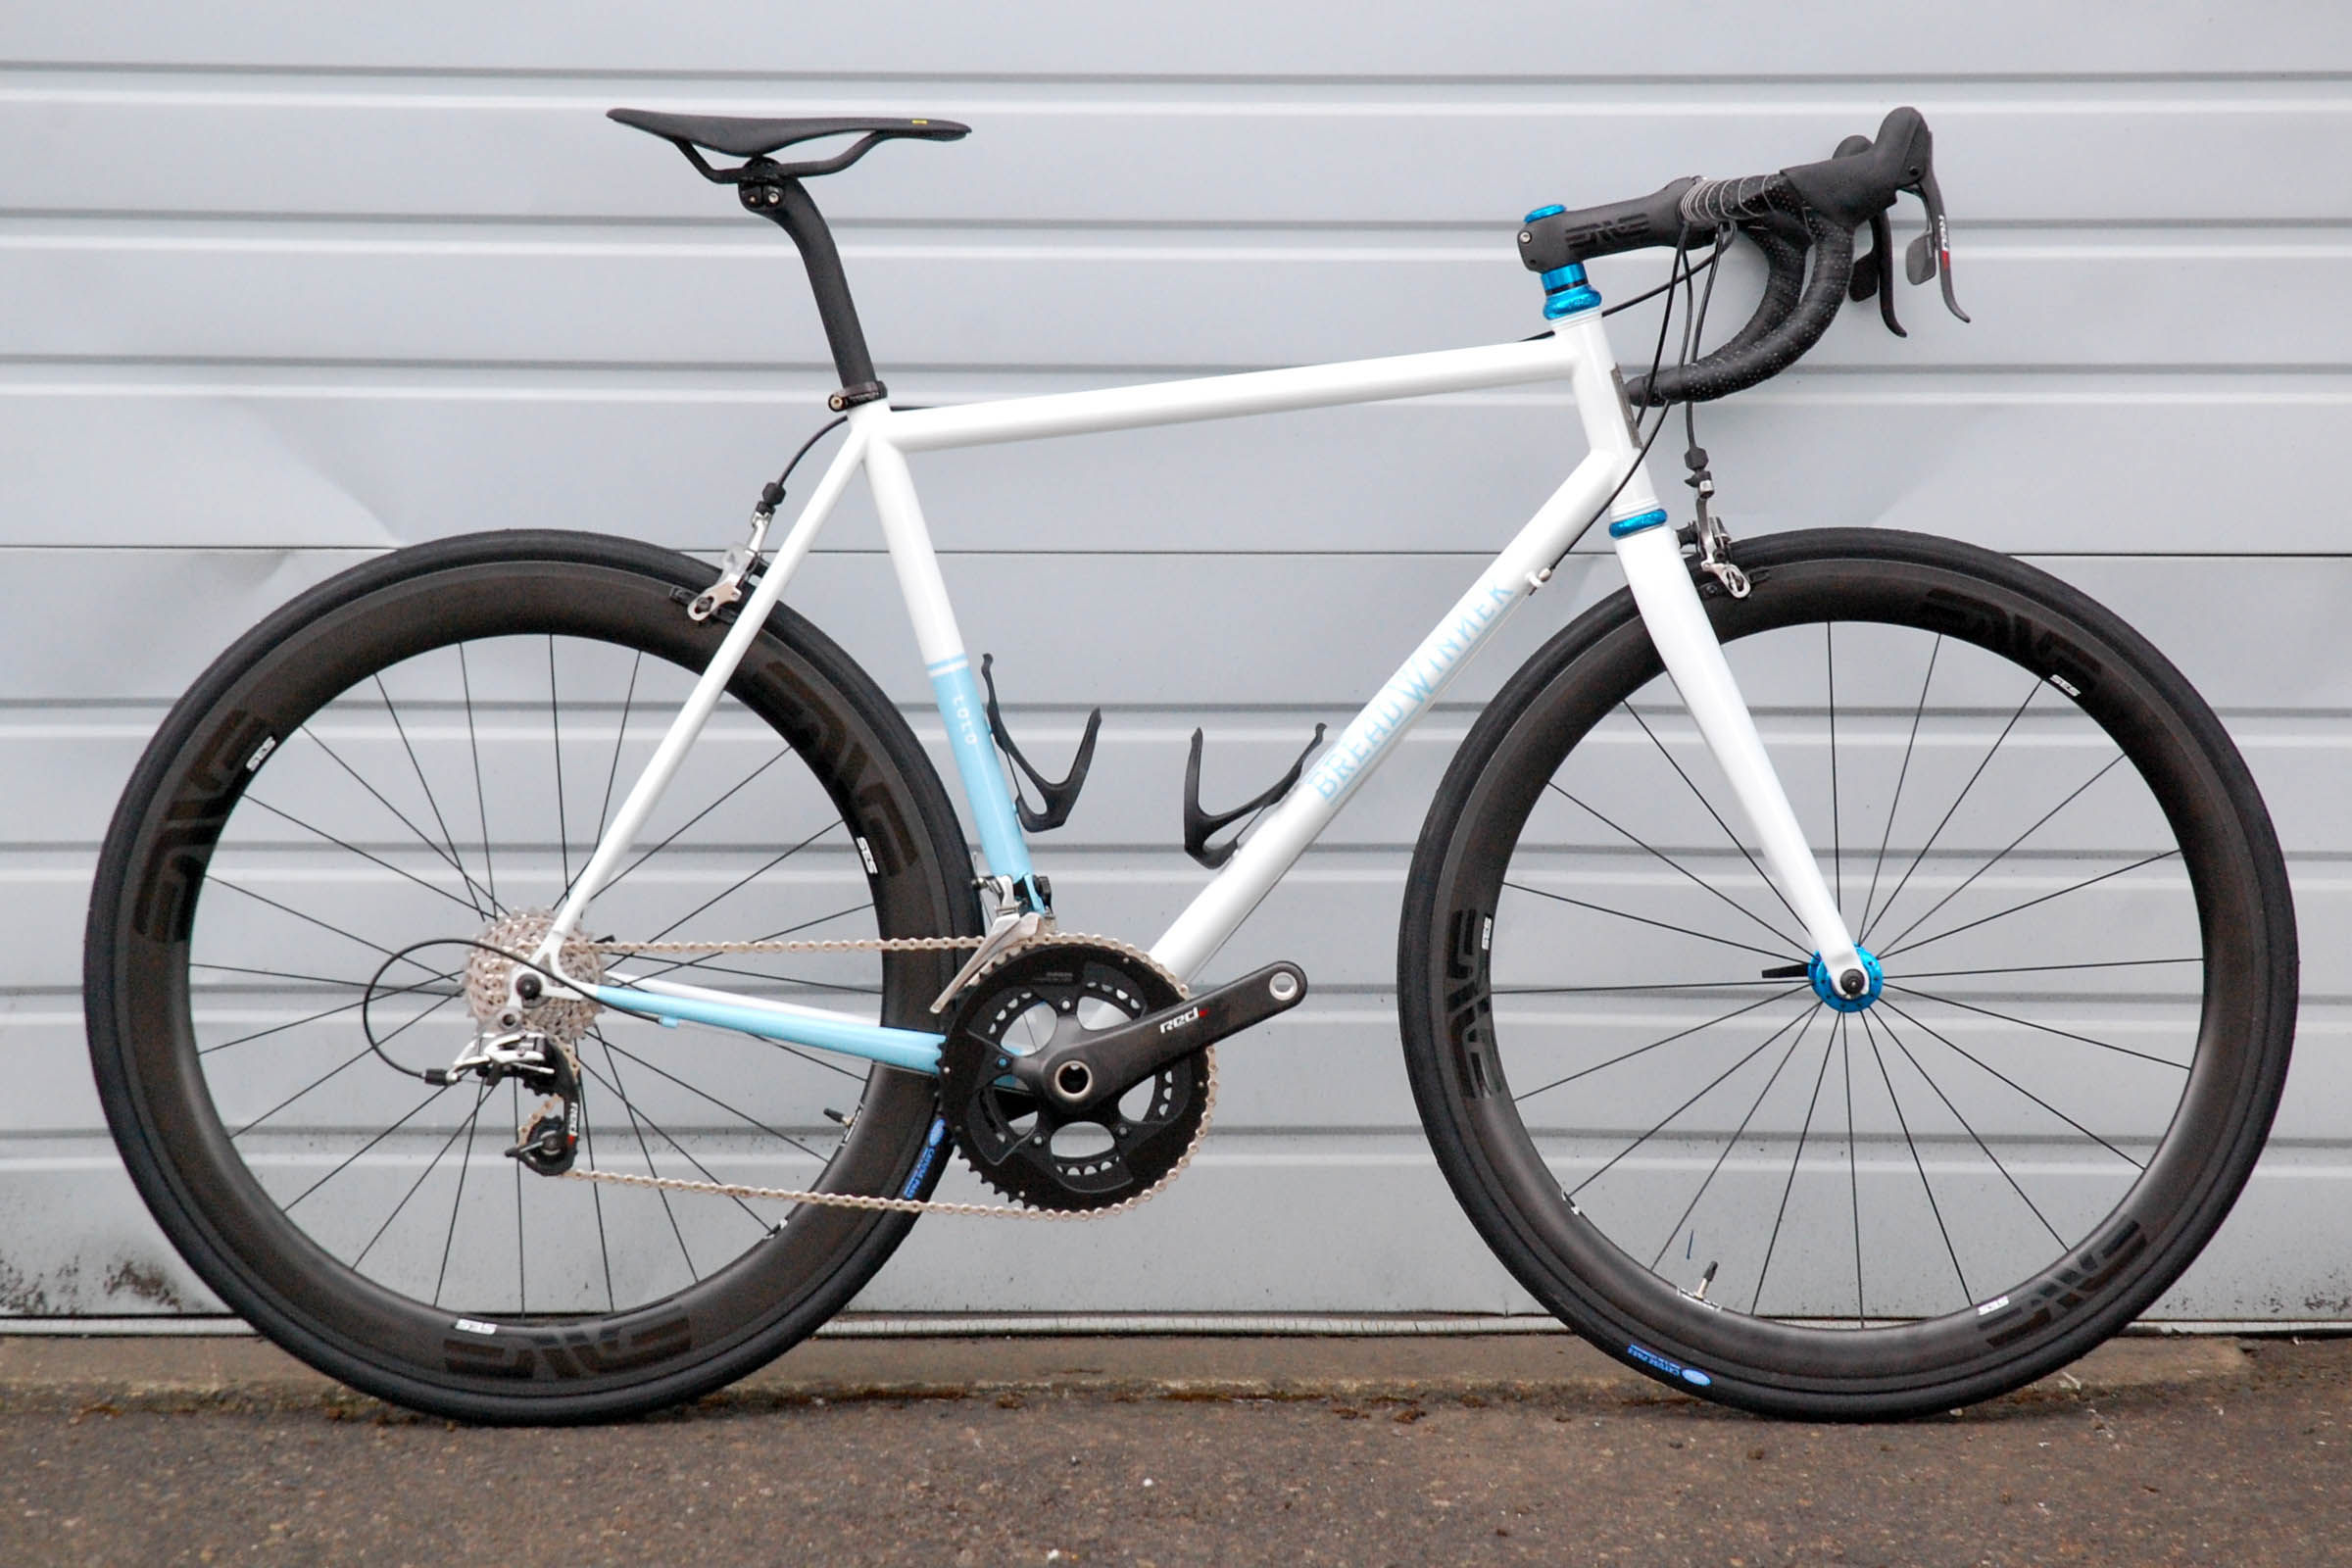 breadwinner_cycles_custom_steel_bikes_portland_oregon_Lolo_road_bike dura ace enve